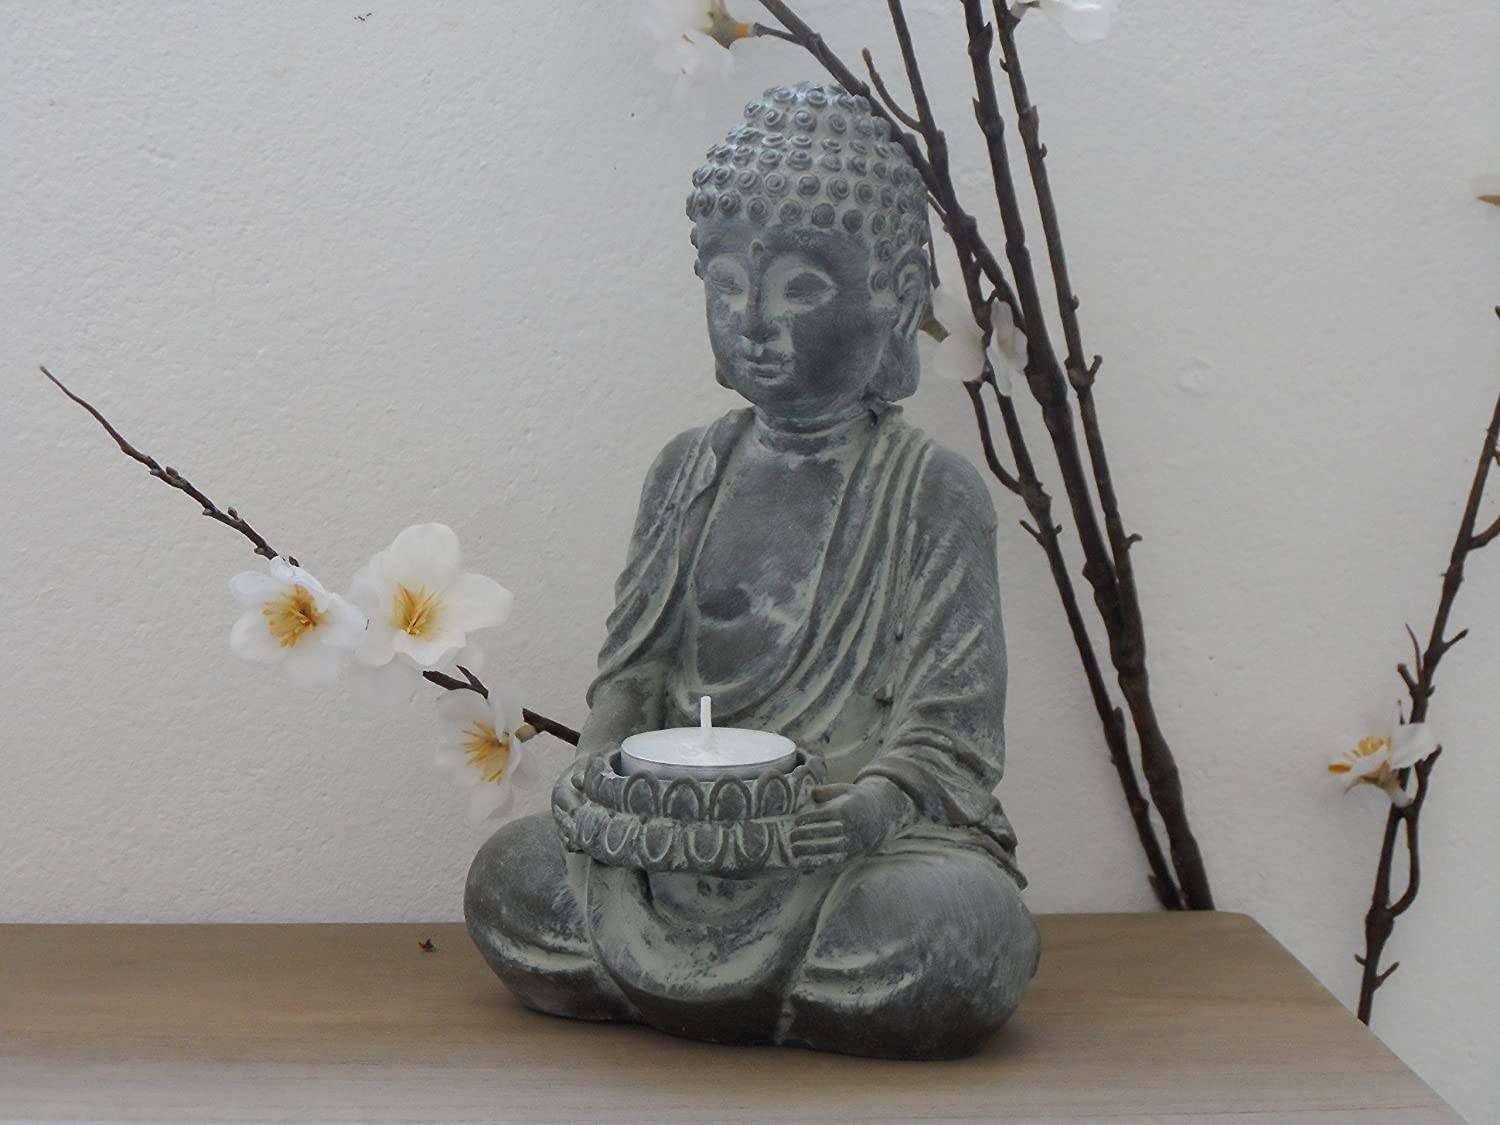 Sitting Buddha Tealight Candle Holder Ornament Stone Effect Home Or Garden Amazon Co Uk Kitchen Home